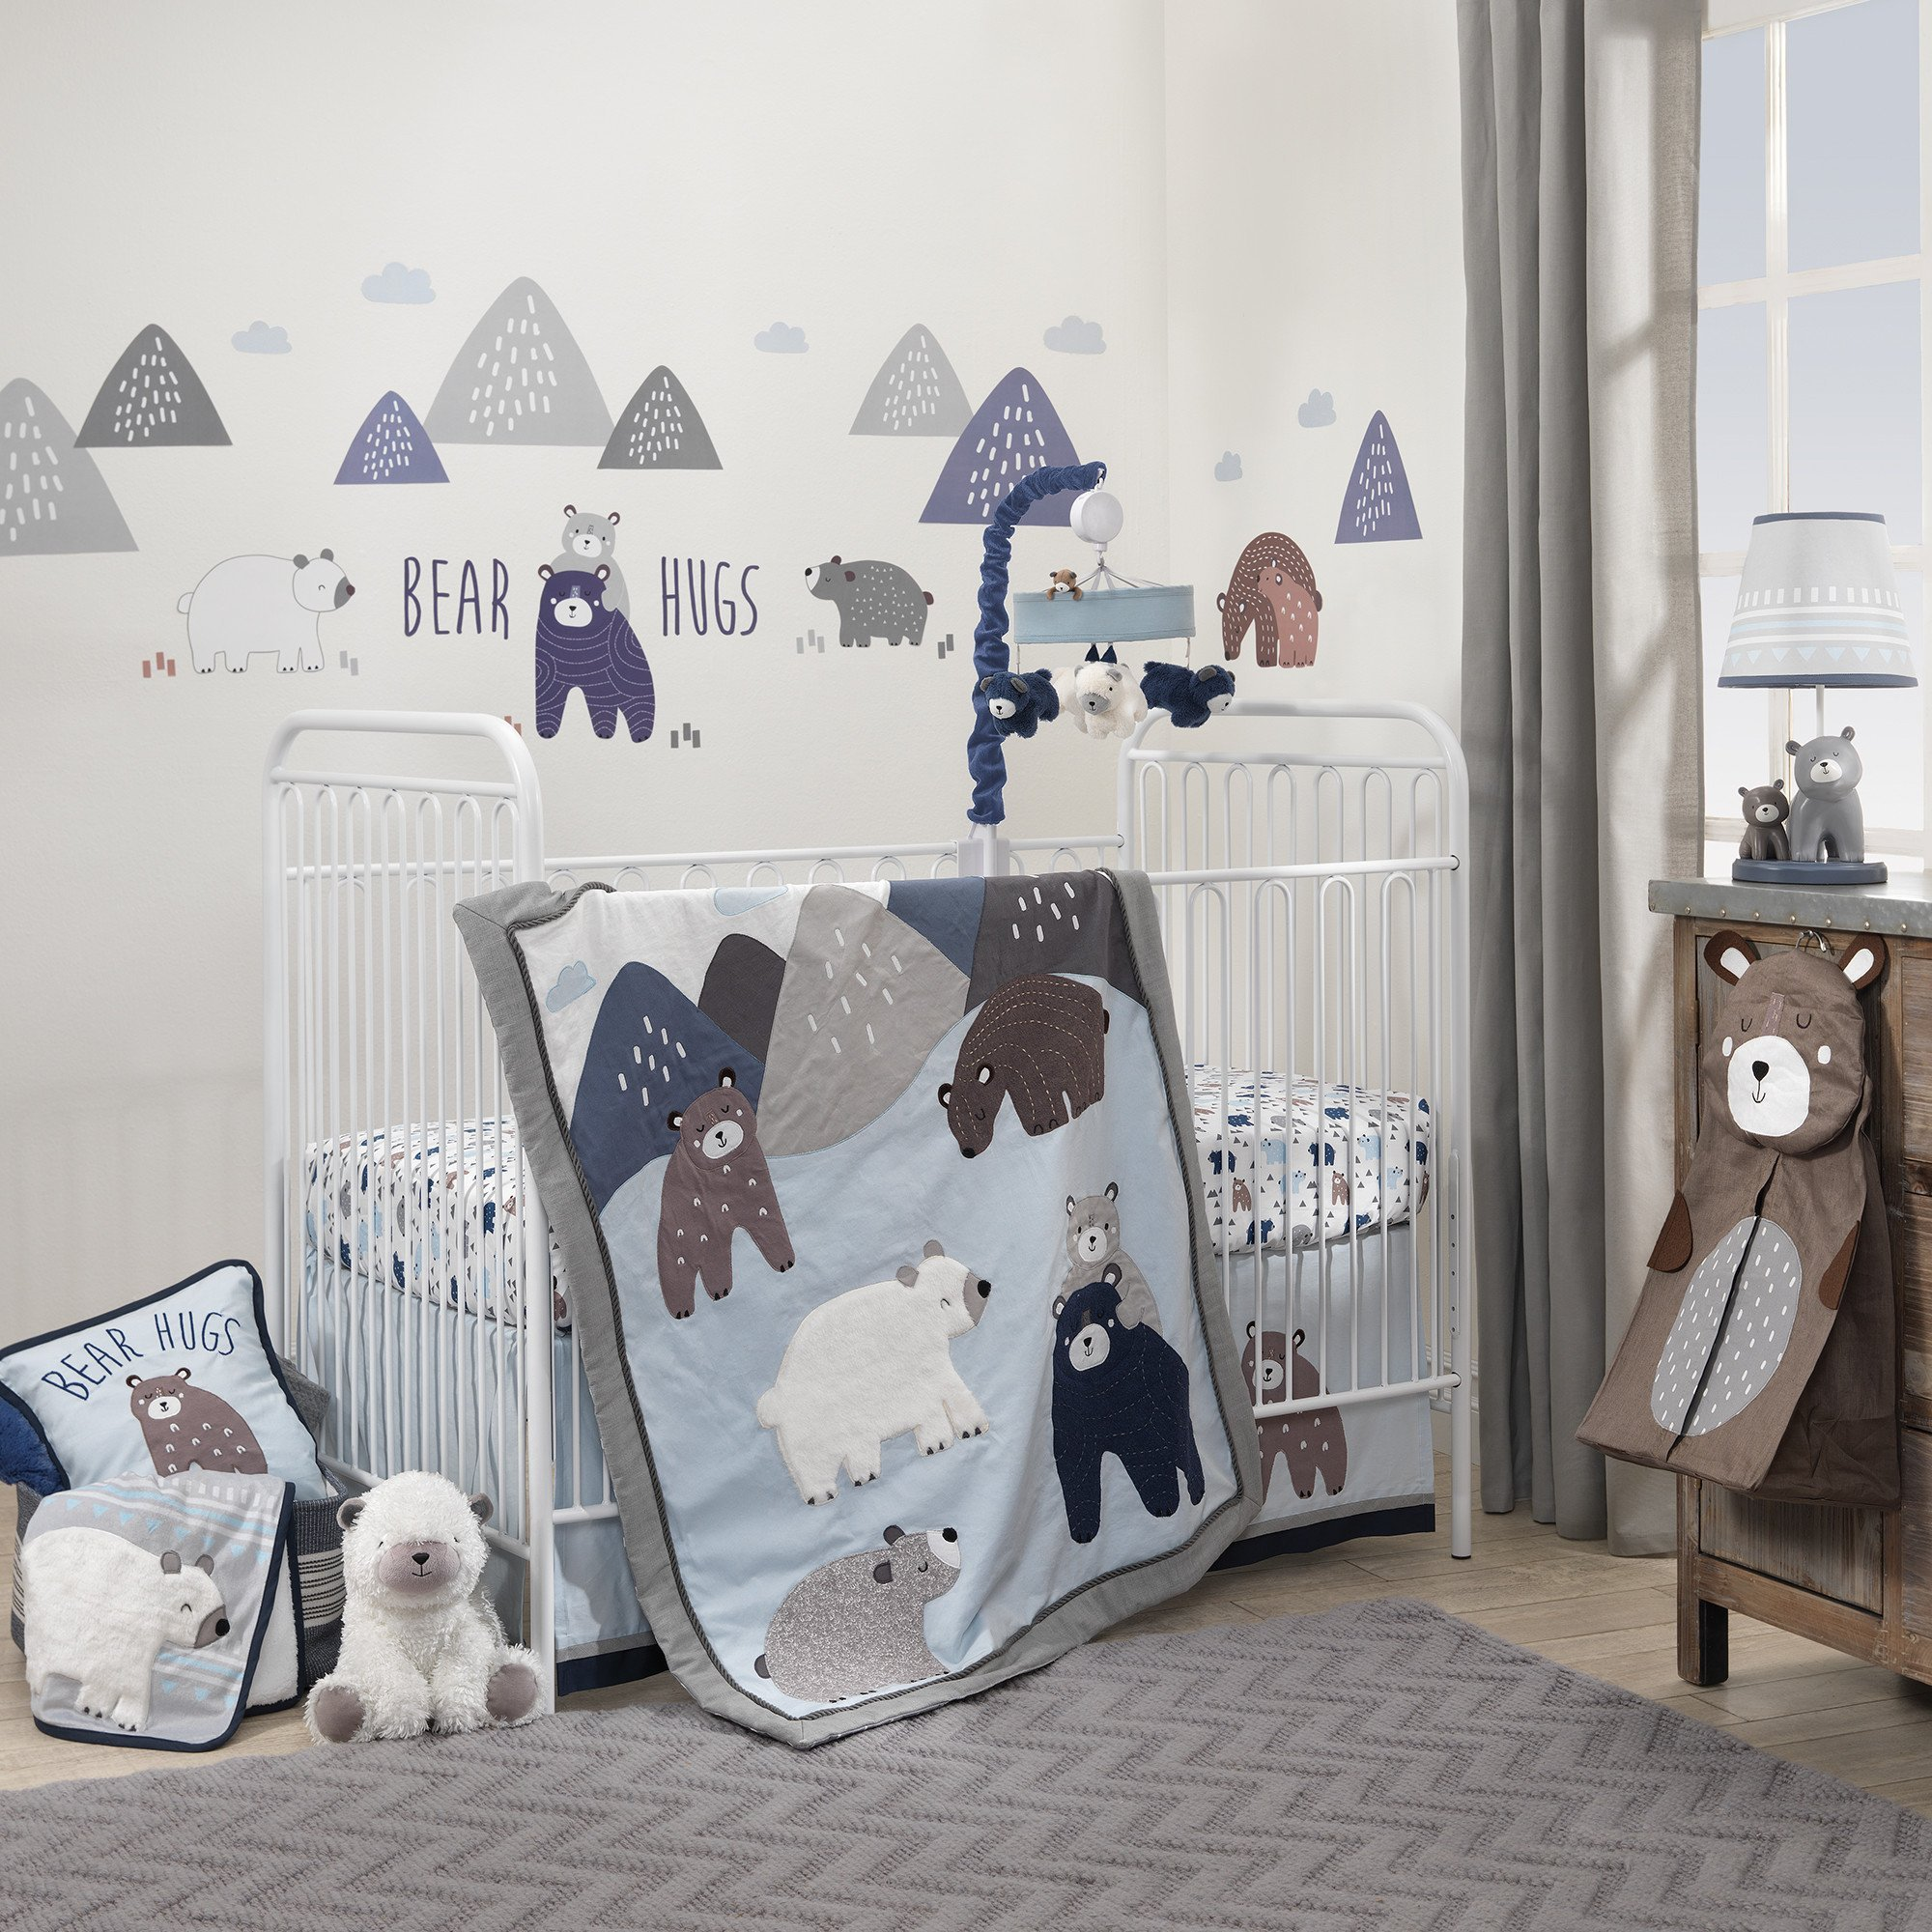 Lambs & Ivy Signature Montana 6-Piece Crib Bedding Set - Blue, Gray, White